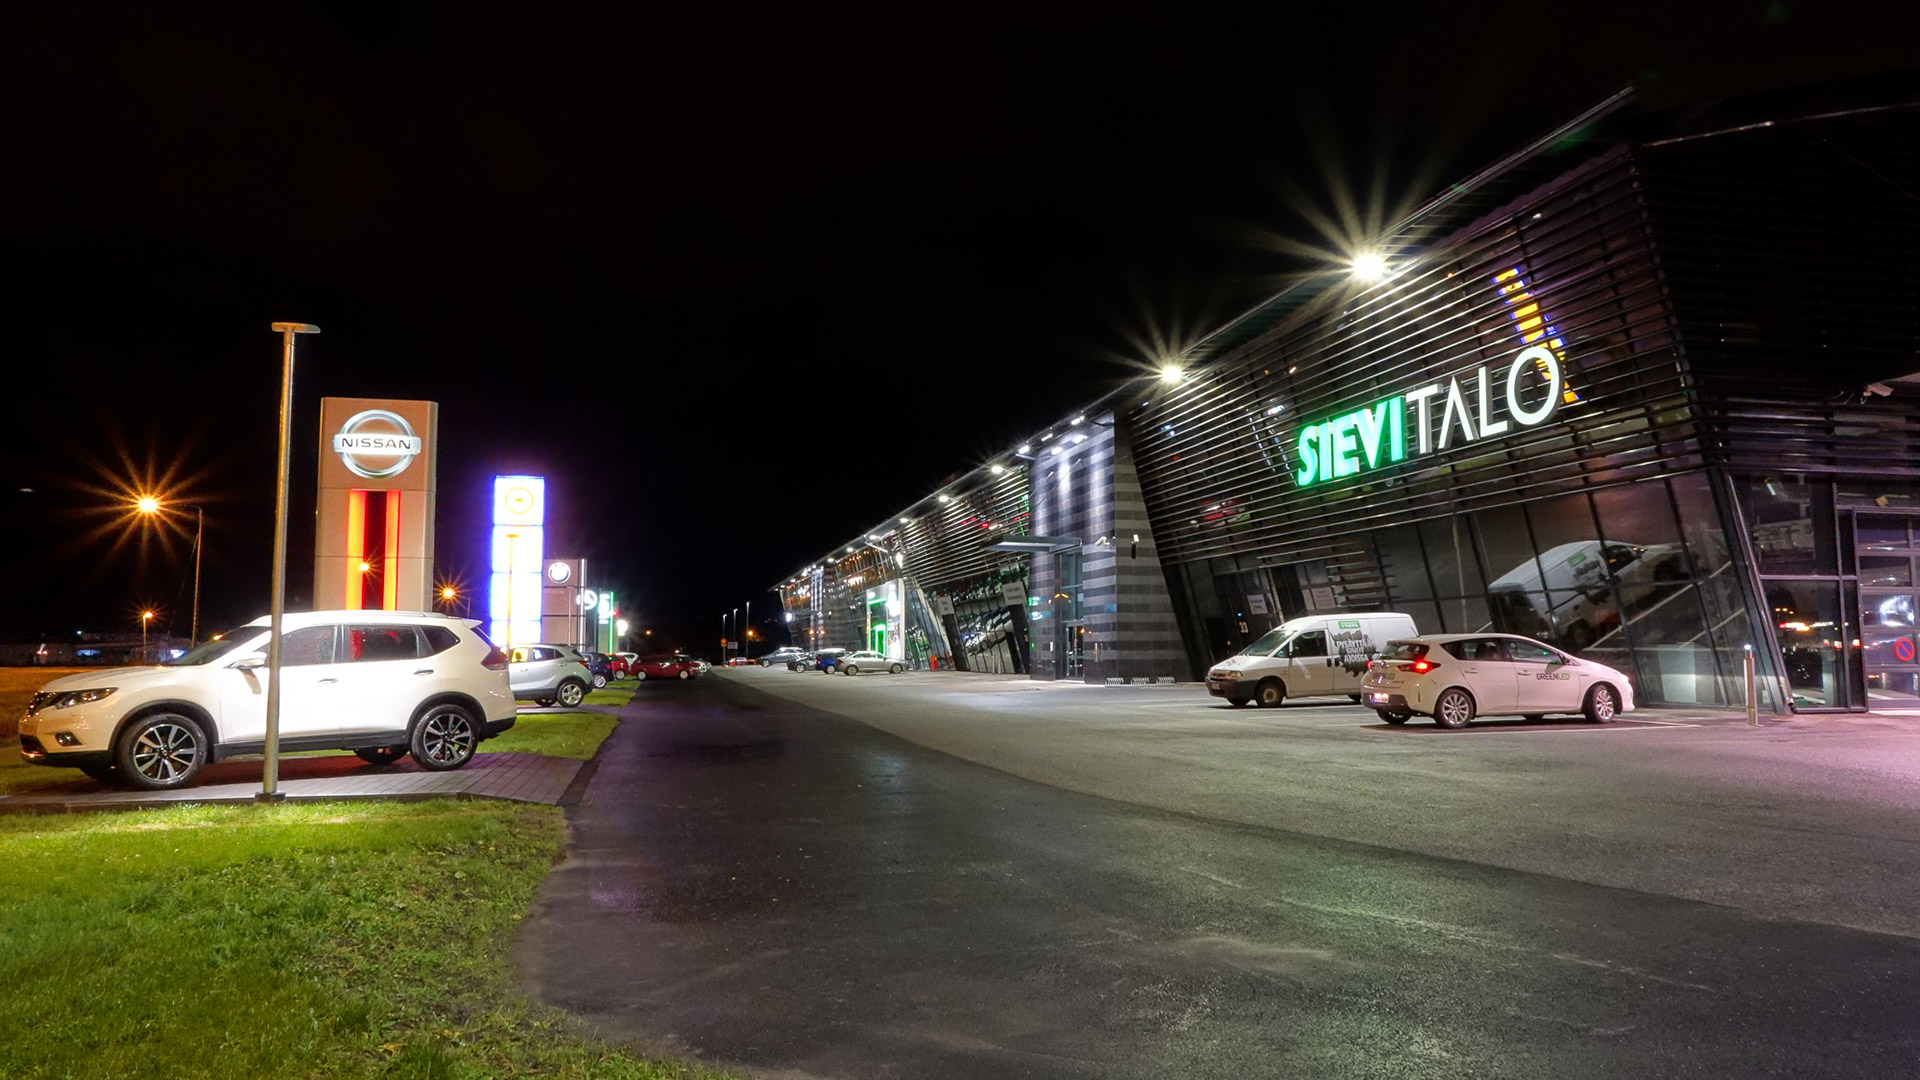 The interior and exterior luminaires at Käyttöauto Kokkola were changed to energy-efficient Greenled luminaires.